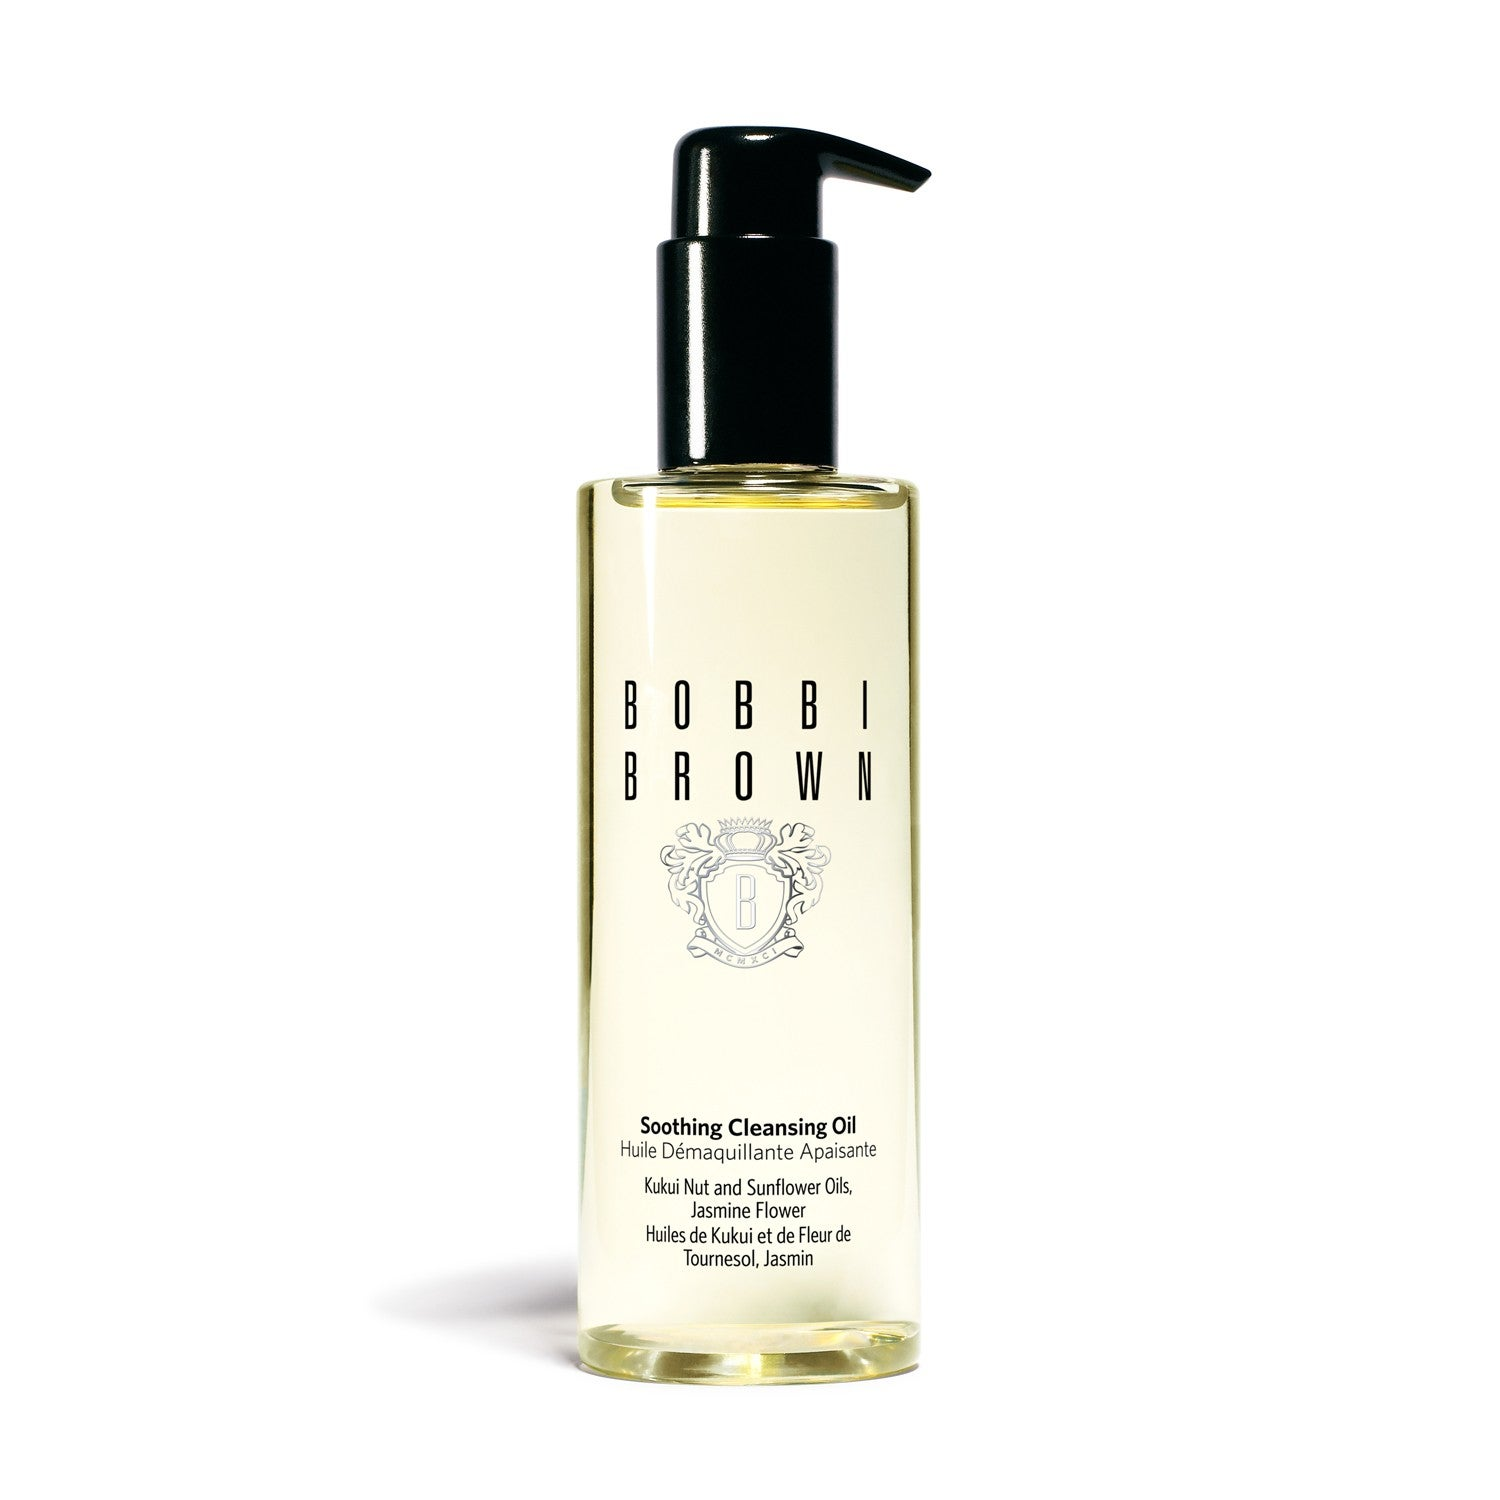 bobbi brown soothing cleansing oil how to use